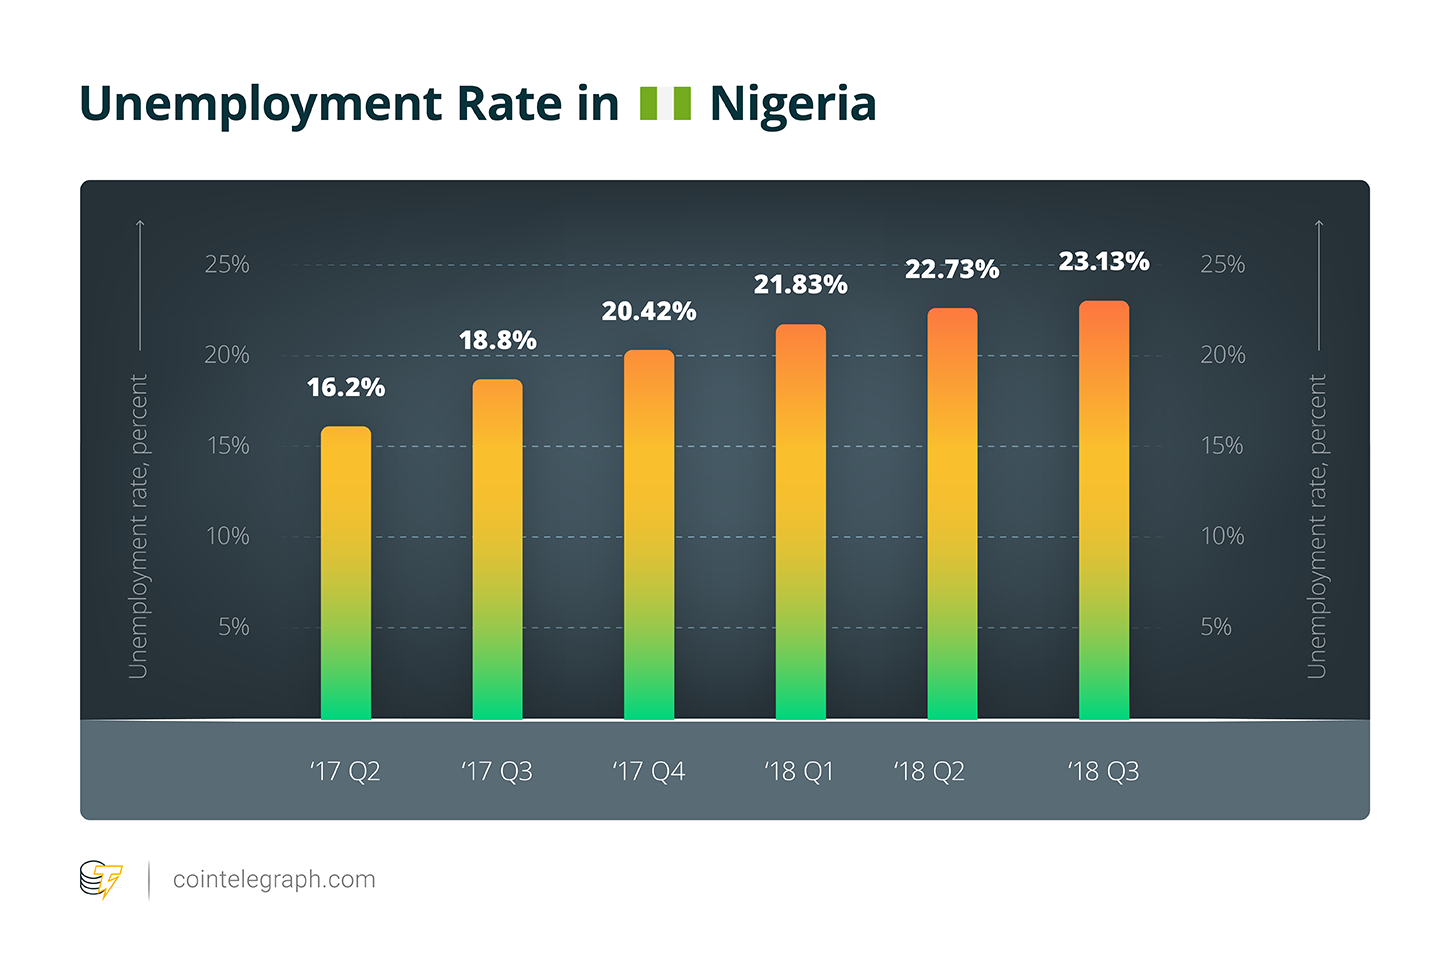 Unemployment Rate in Nigeria